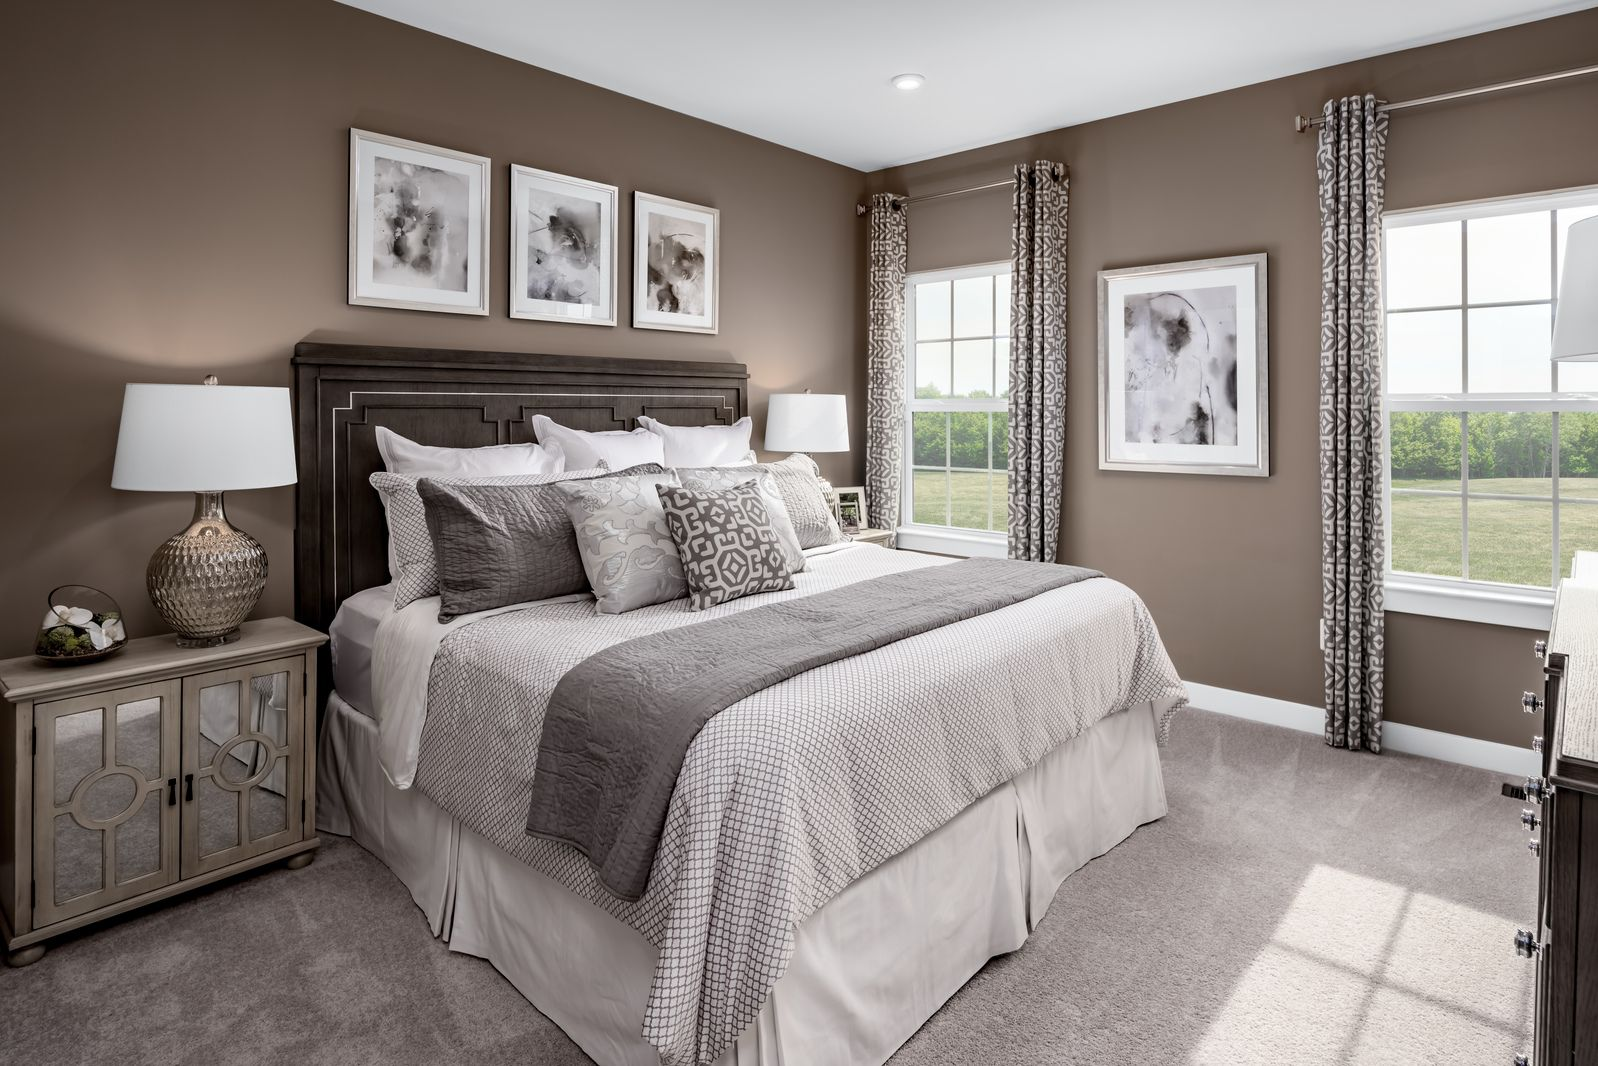 Bedroom featured in the Alberti Ranch By Ryan Homes in Chicago, IL